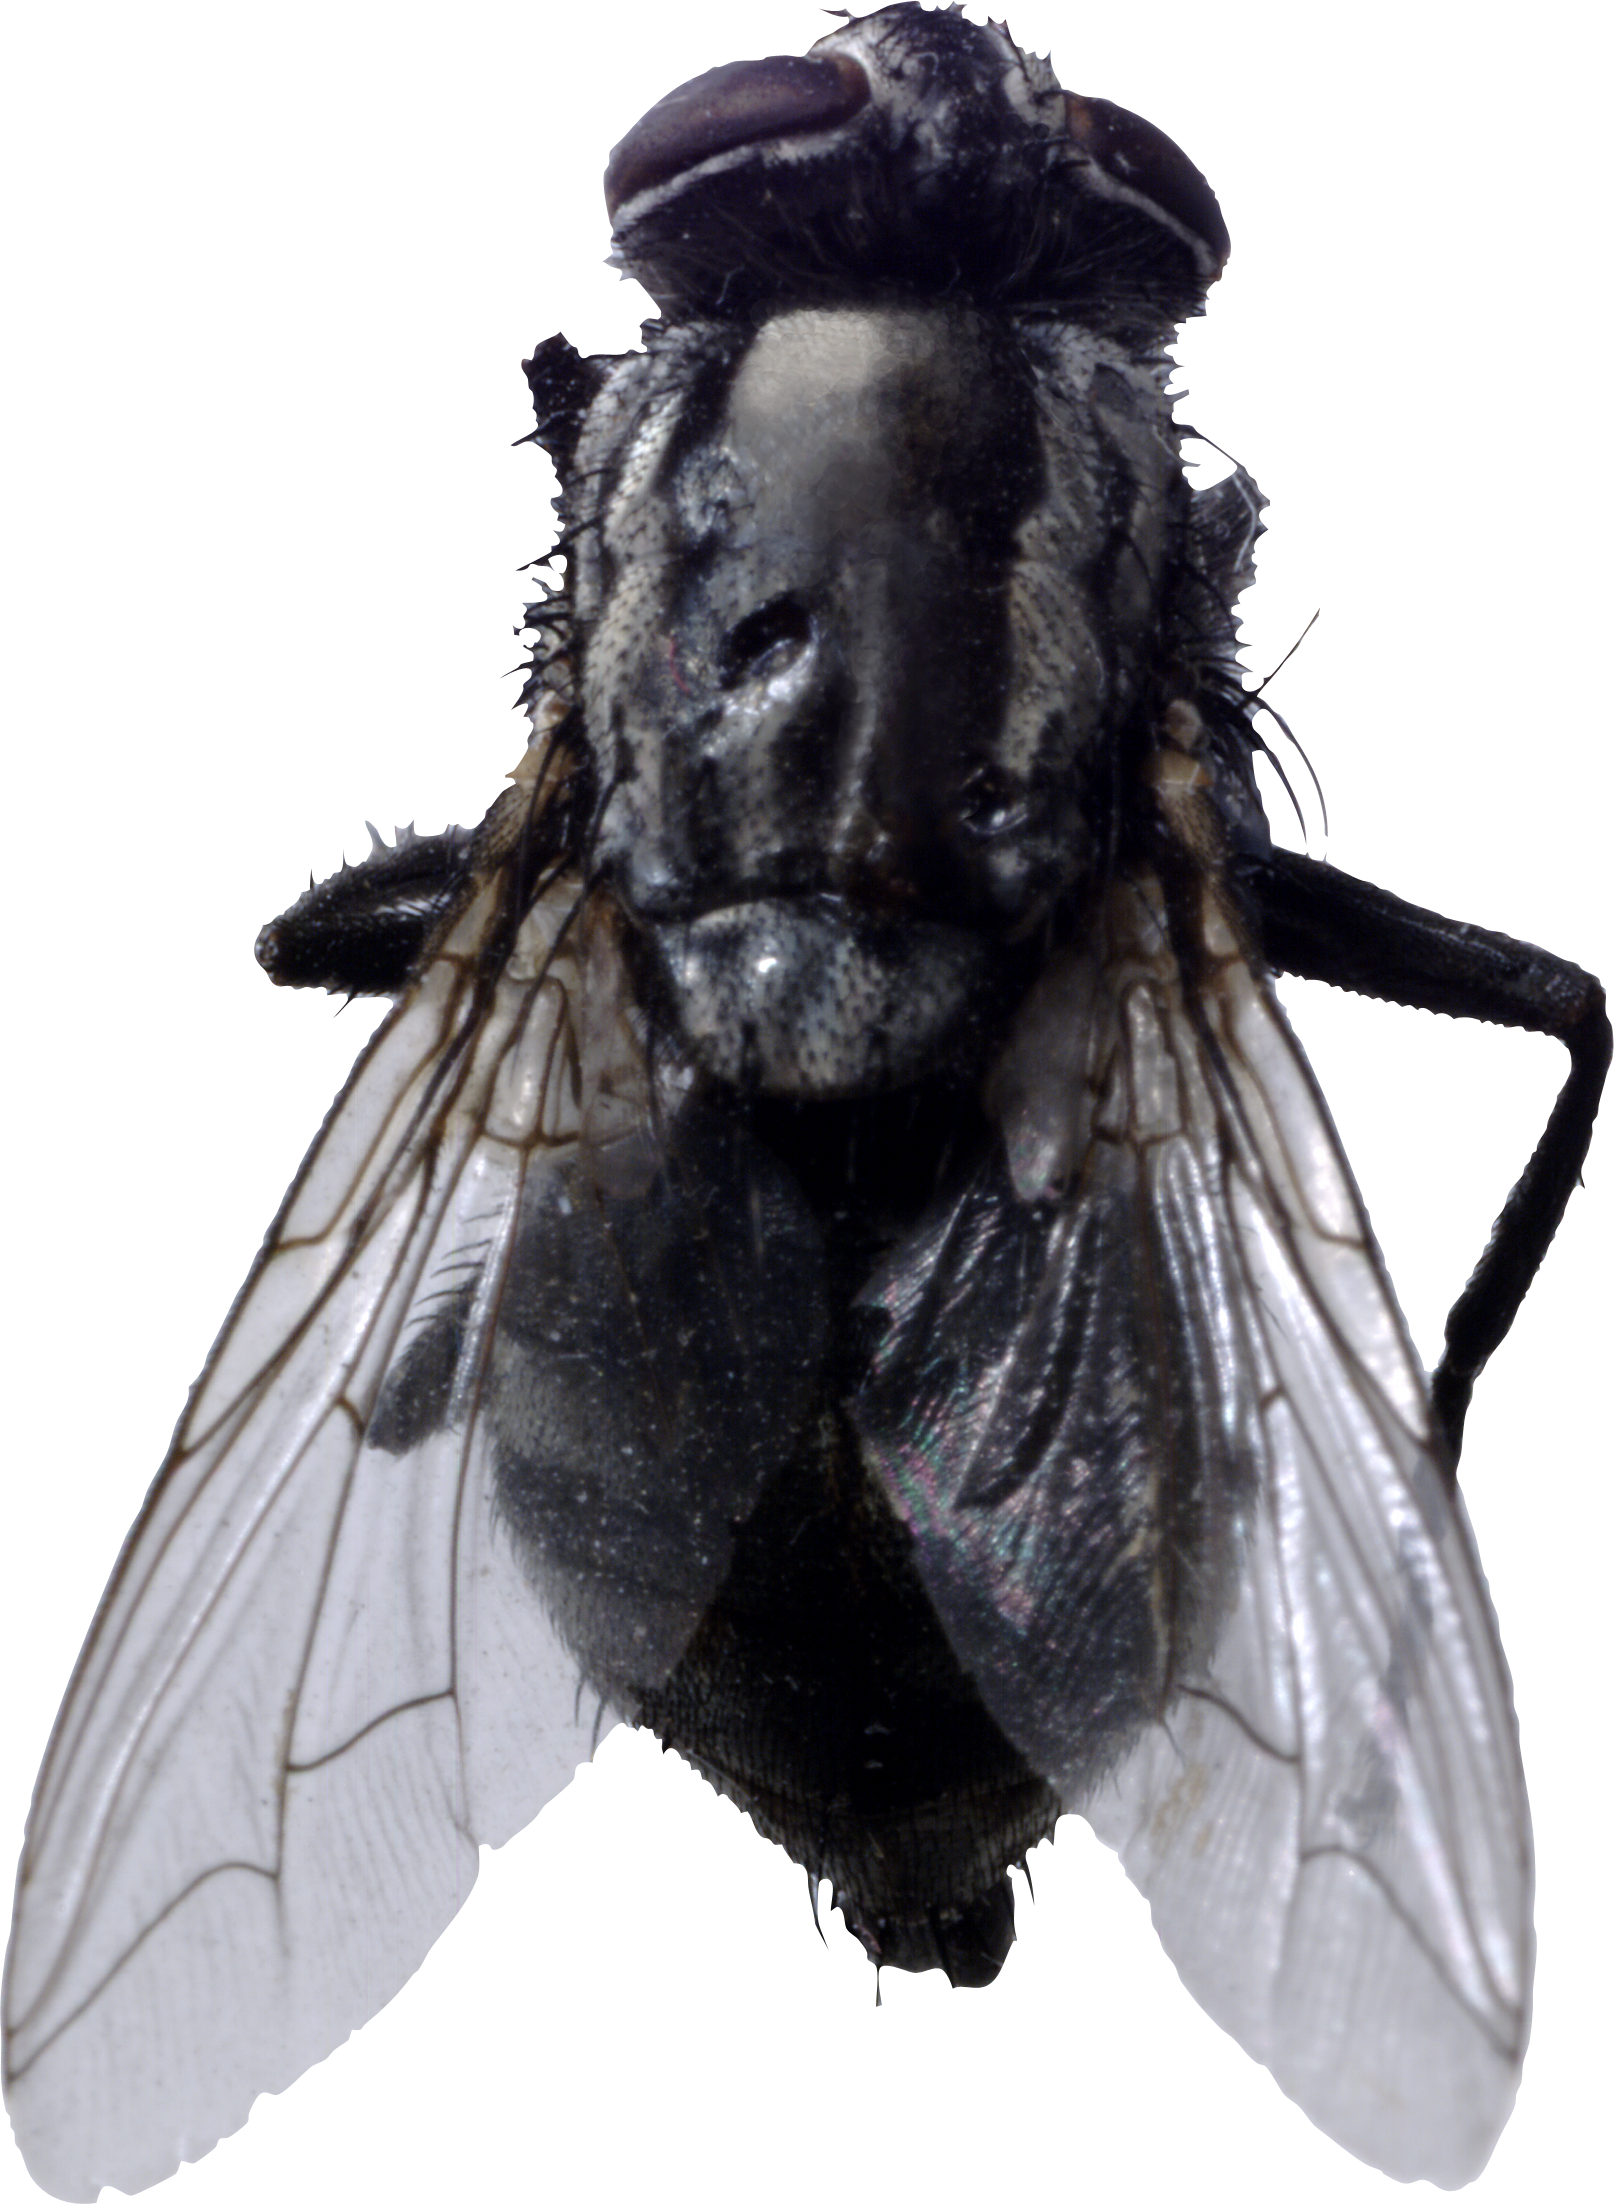 uploads fly fly PNG3948 24